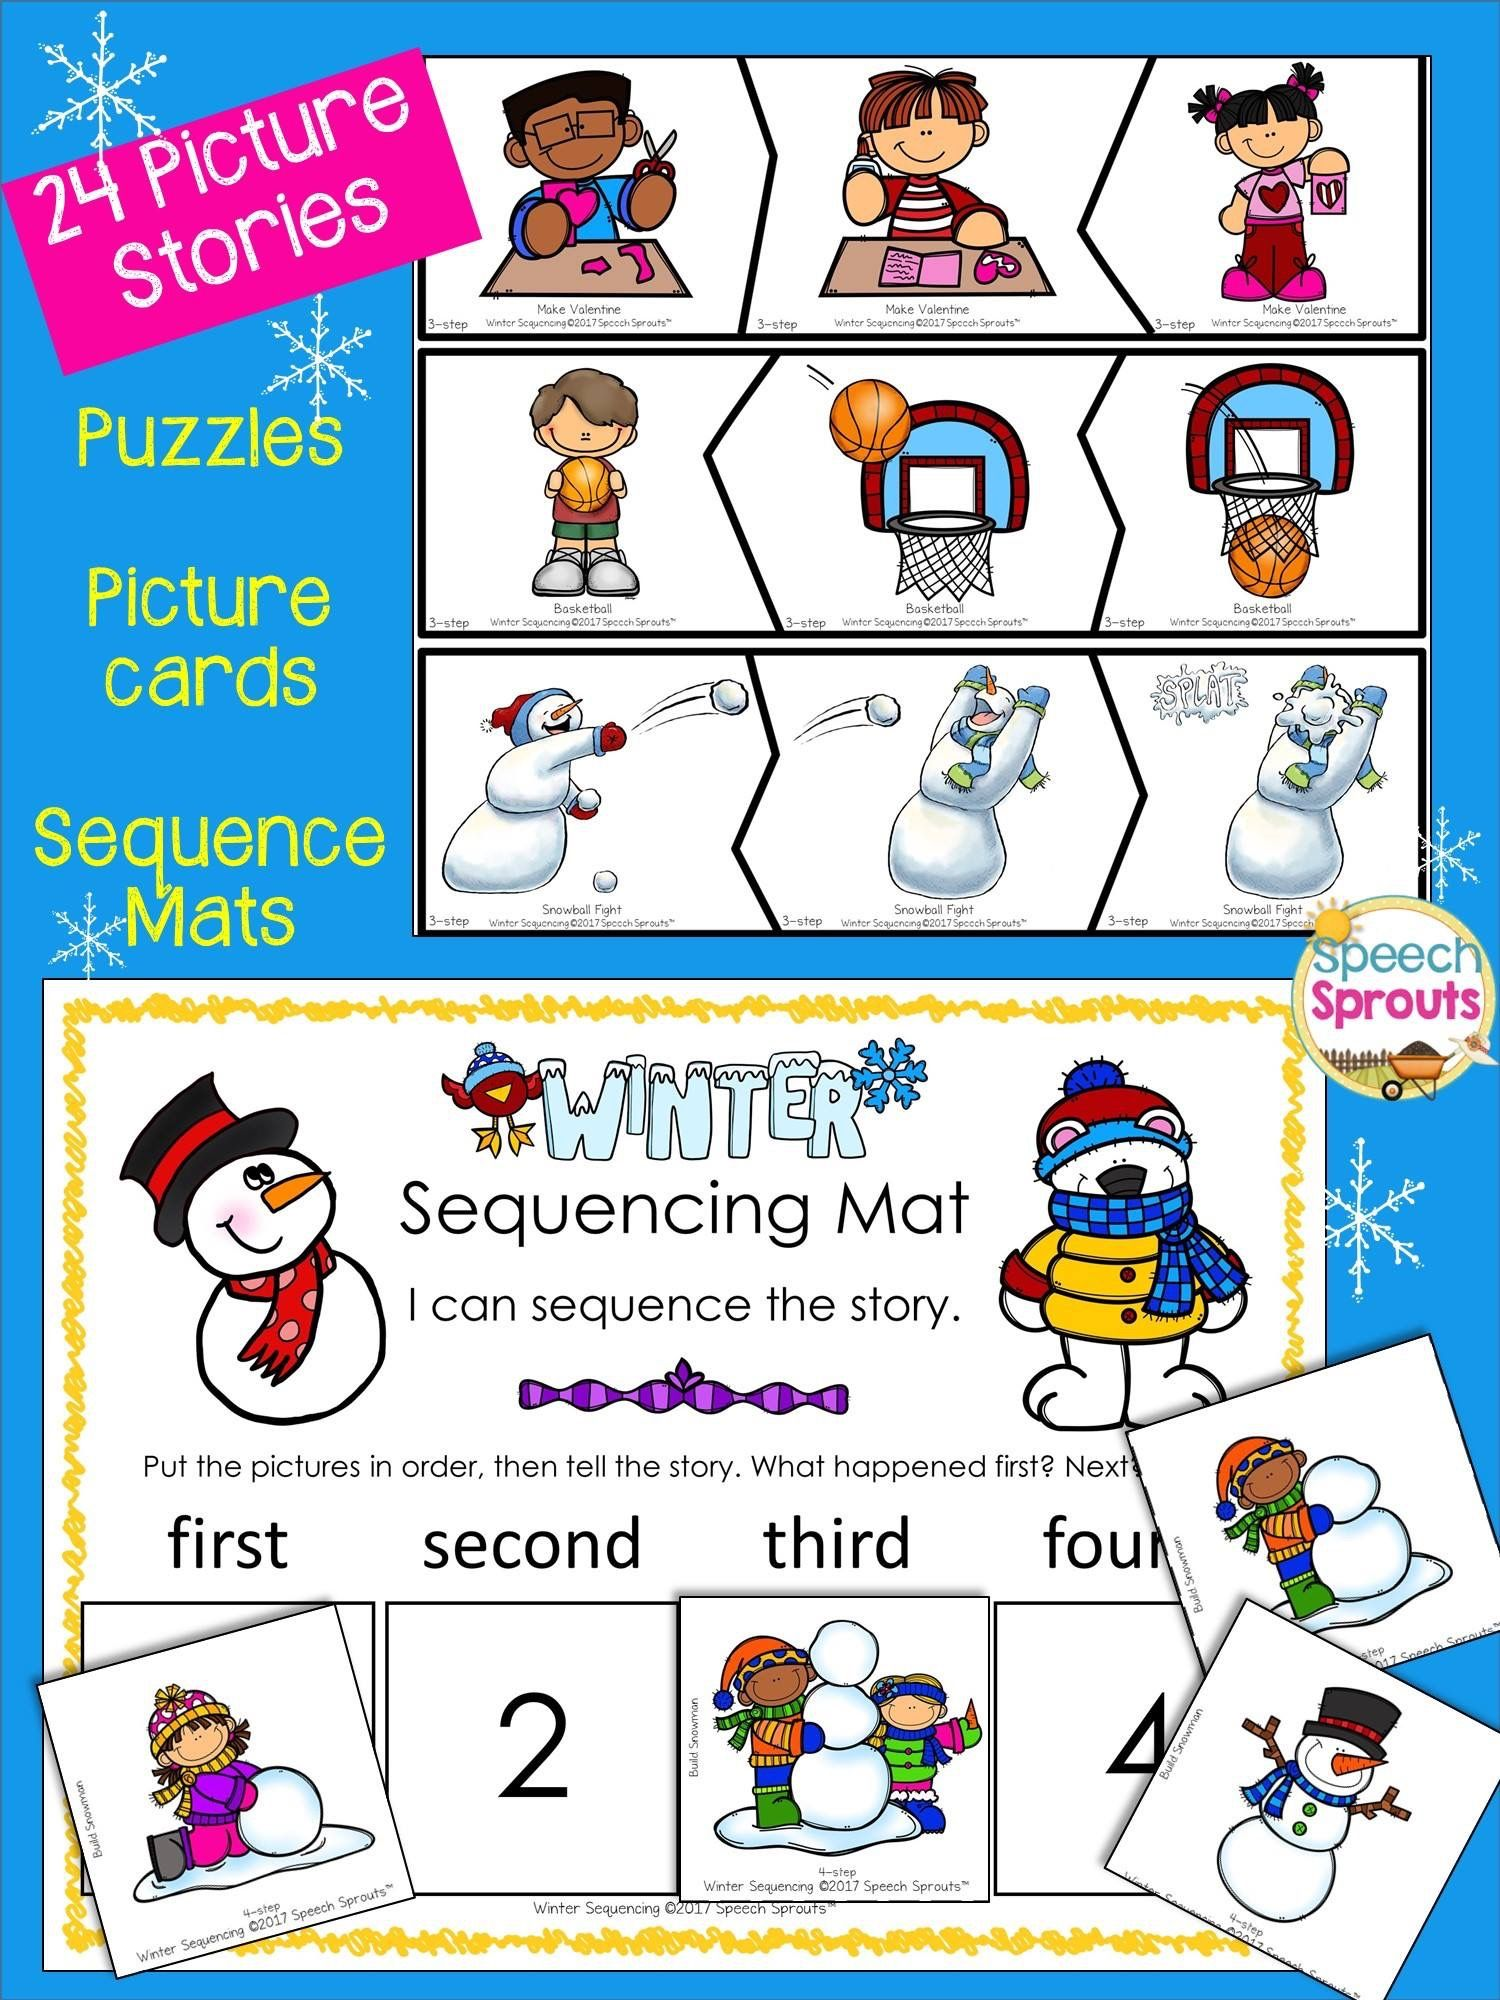 4 Step Sequencing Story Worksheet